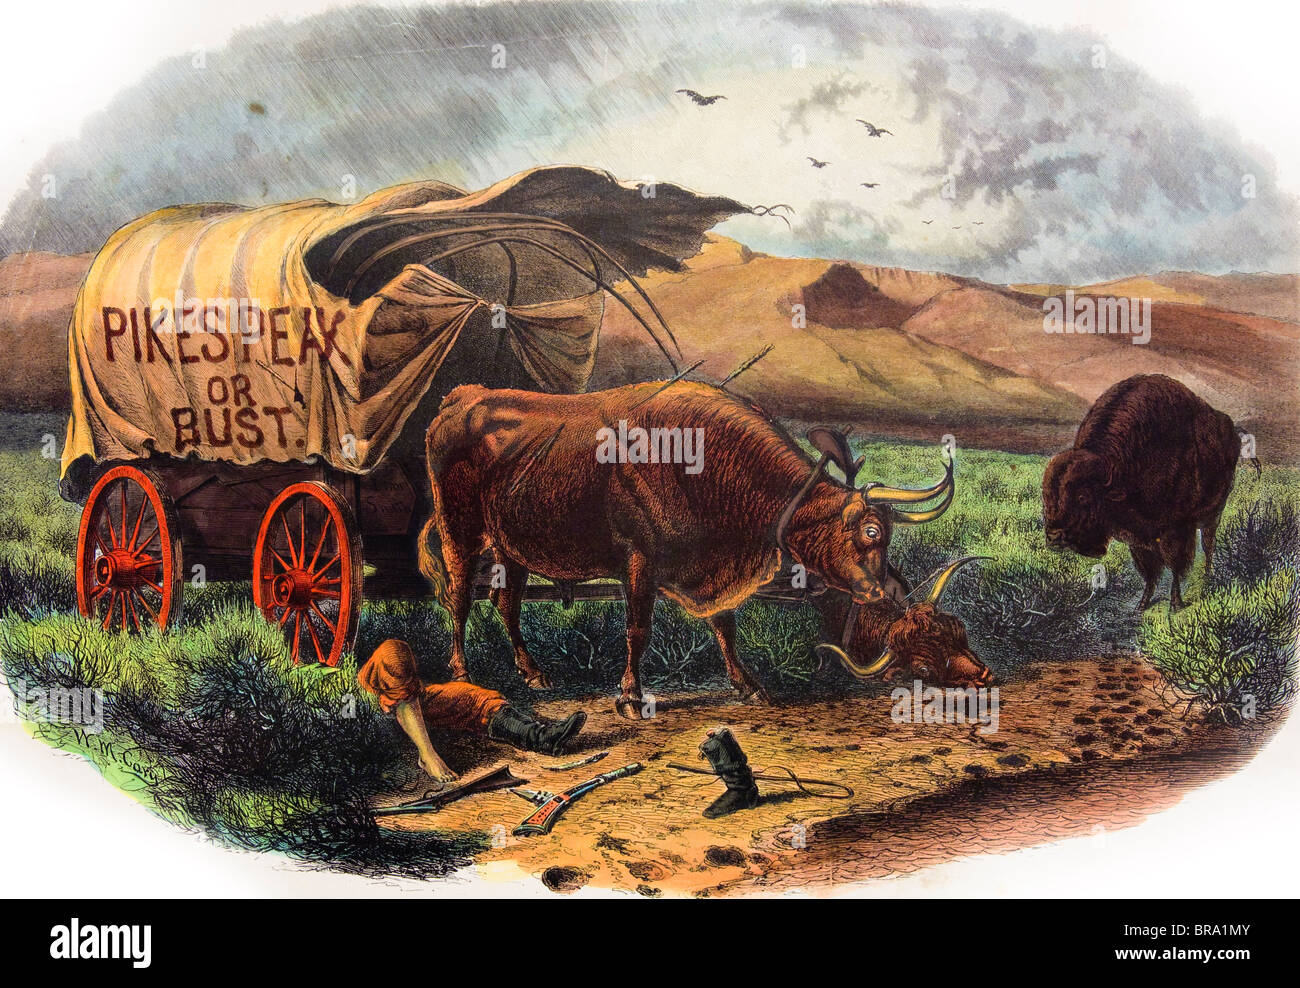 1800s 1859 DEAD PIONEER UNDER COVERED WAGON PIKES PEAK OR BUST SLOGAN OXEN BISON VULTURES COLORADO GOLD RUSH - Stock Image